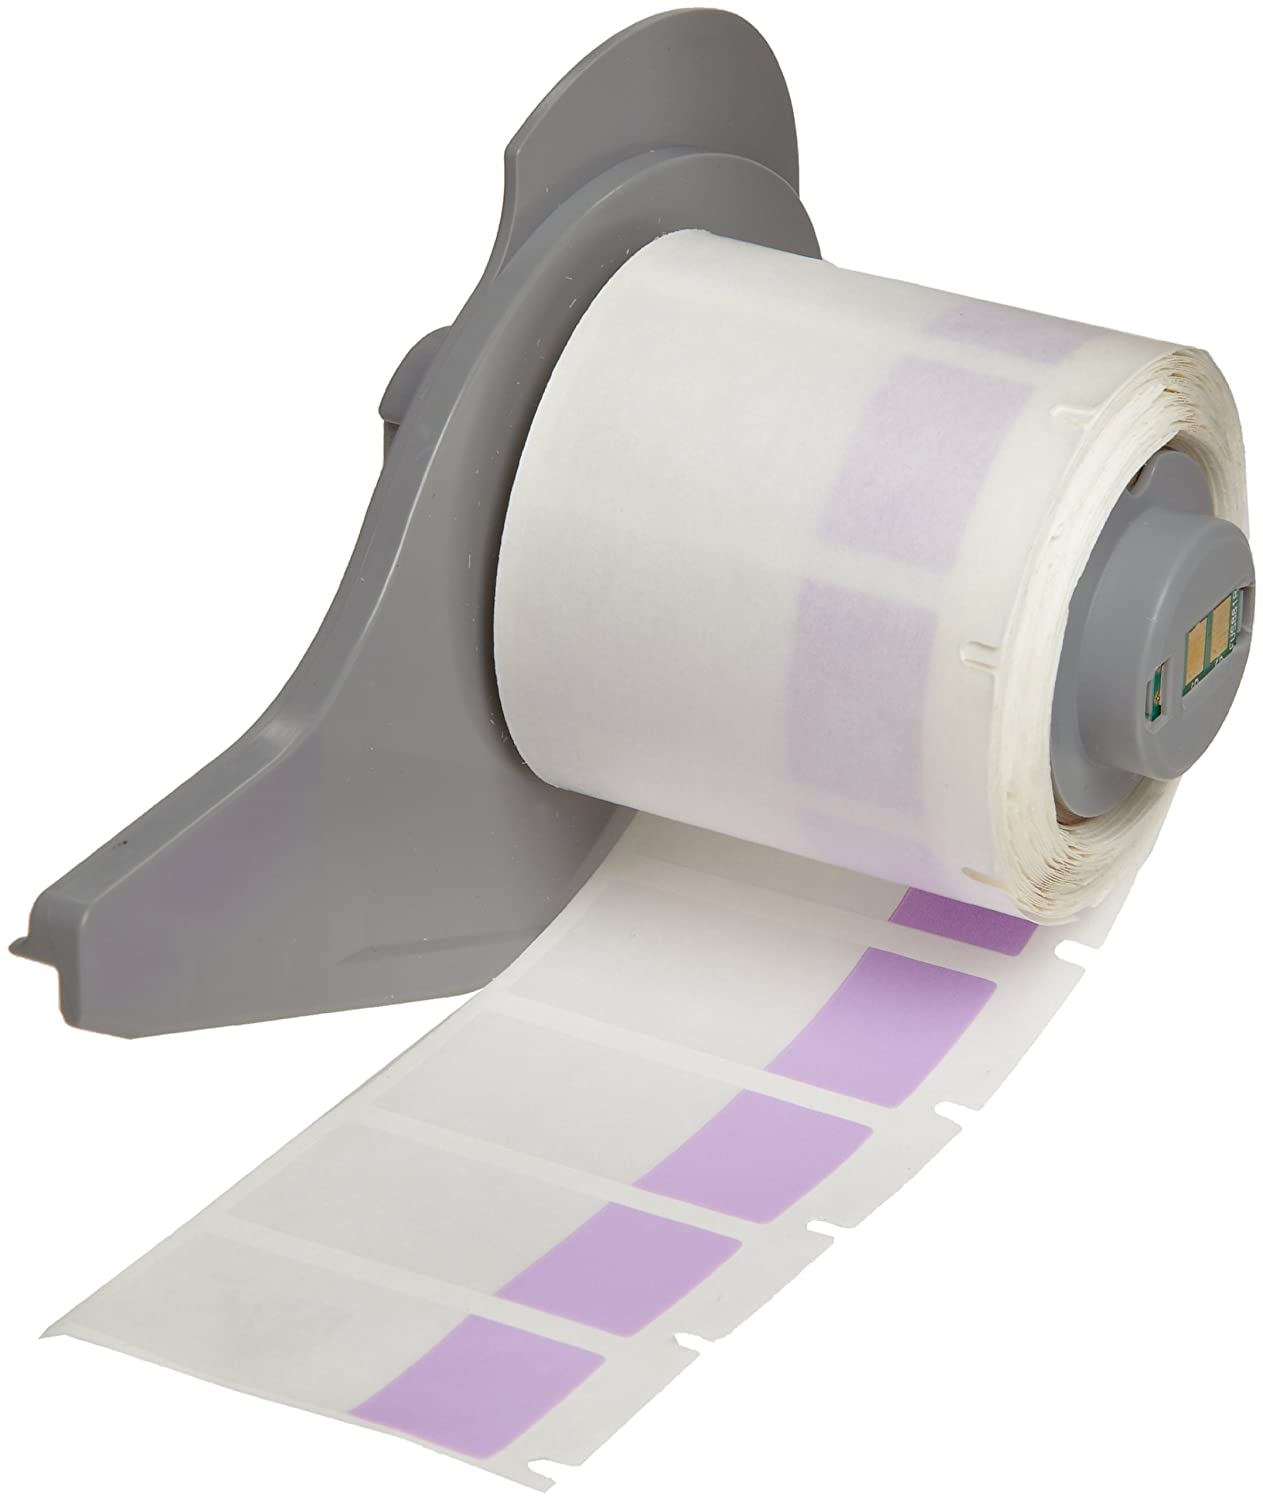 Brady M71-18-427 0.75 Width x 1 Height White//Translucent Color B-427 Self-Laminating Vinyl Labels With Matte Finish For BMP71 Label Printer 250 Per Roll